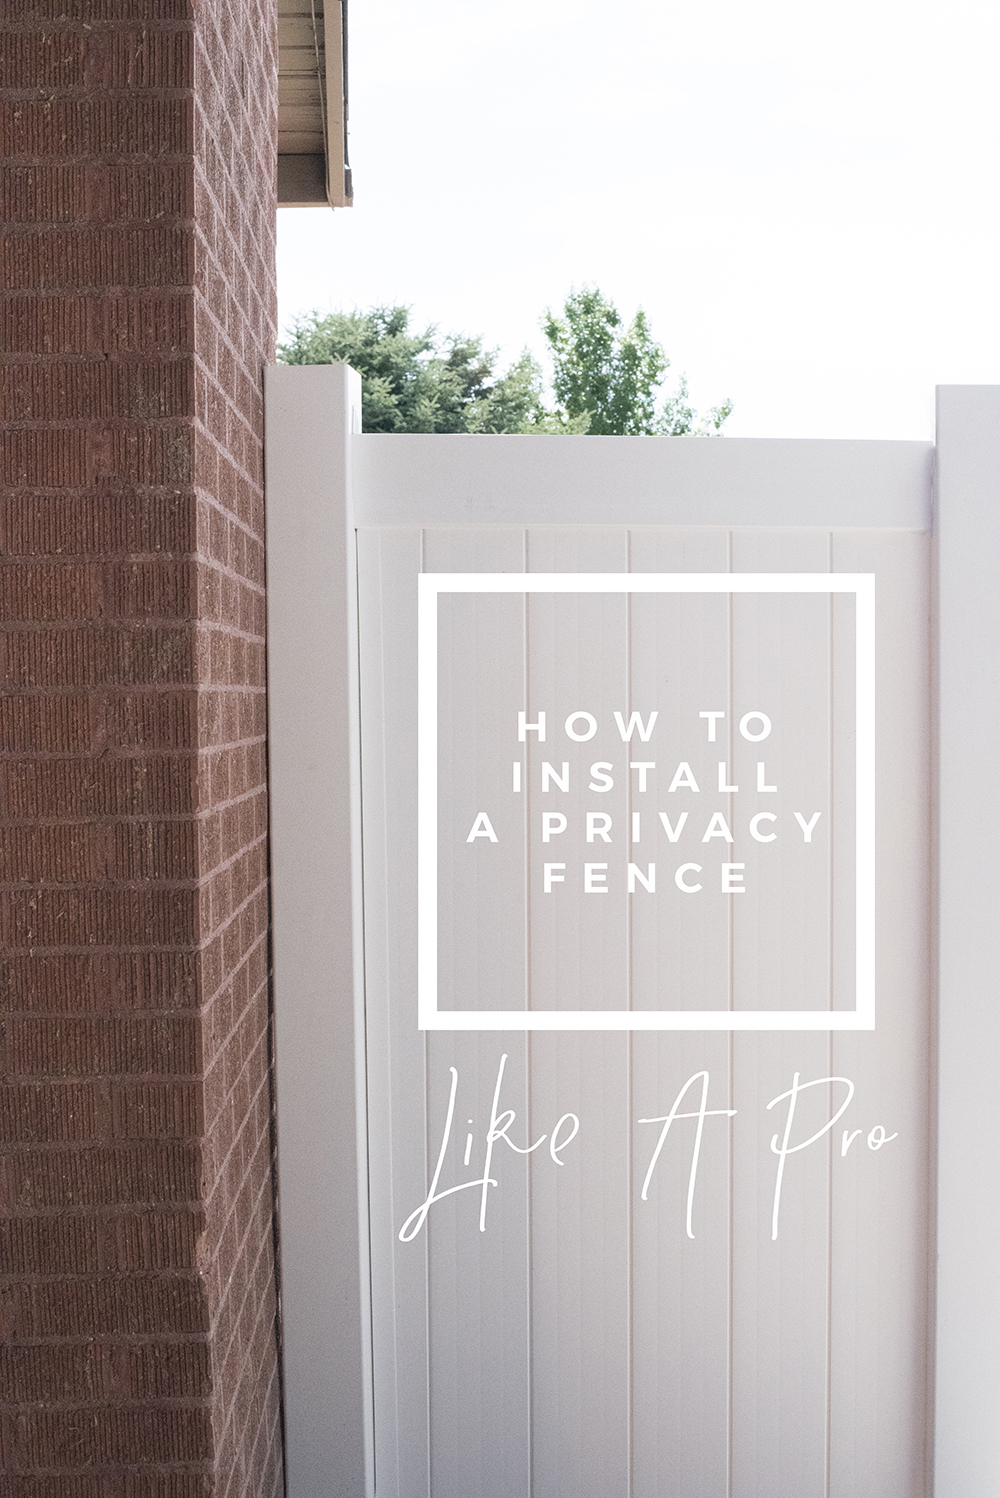 How to Install a Privacy Fence